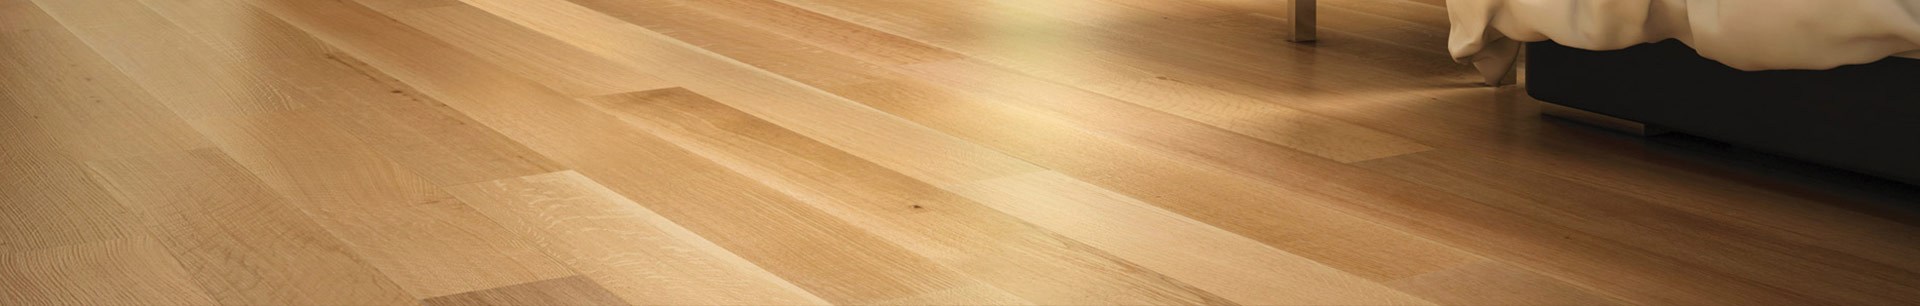 Click Together Hardwood